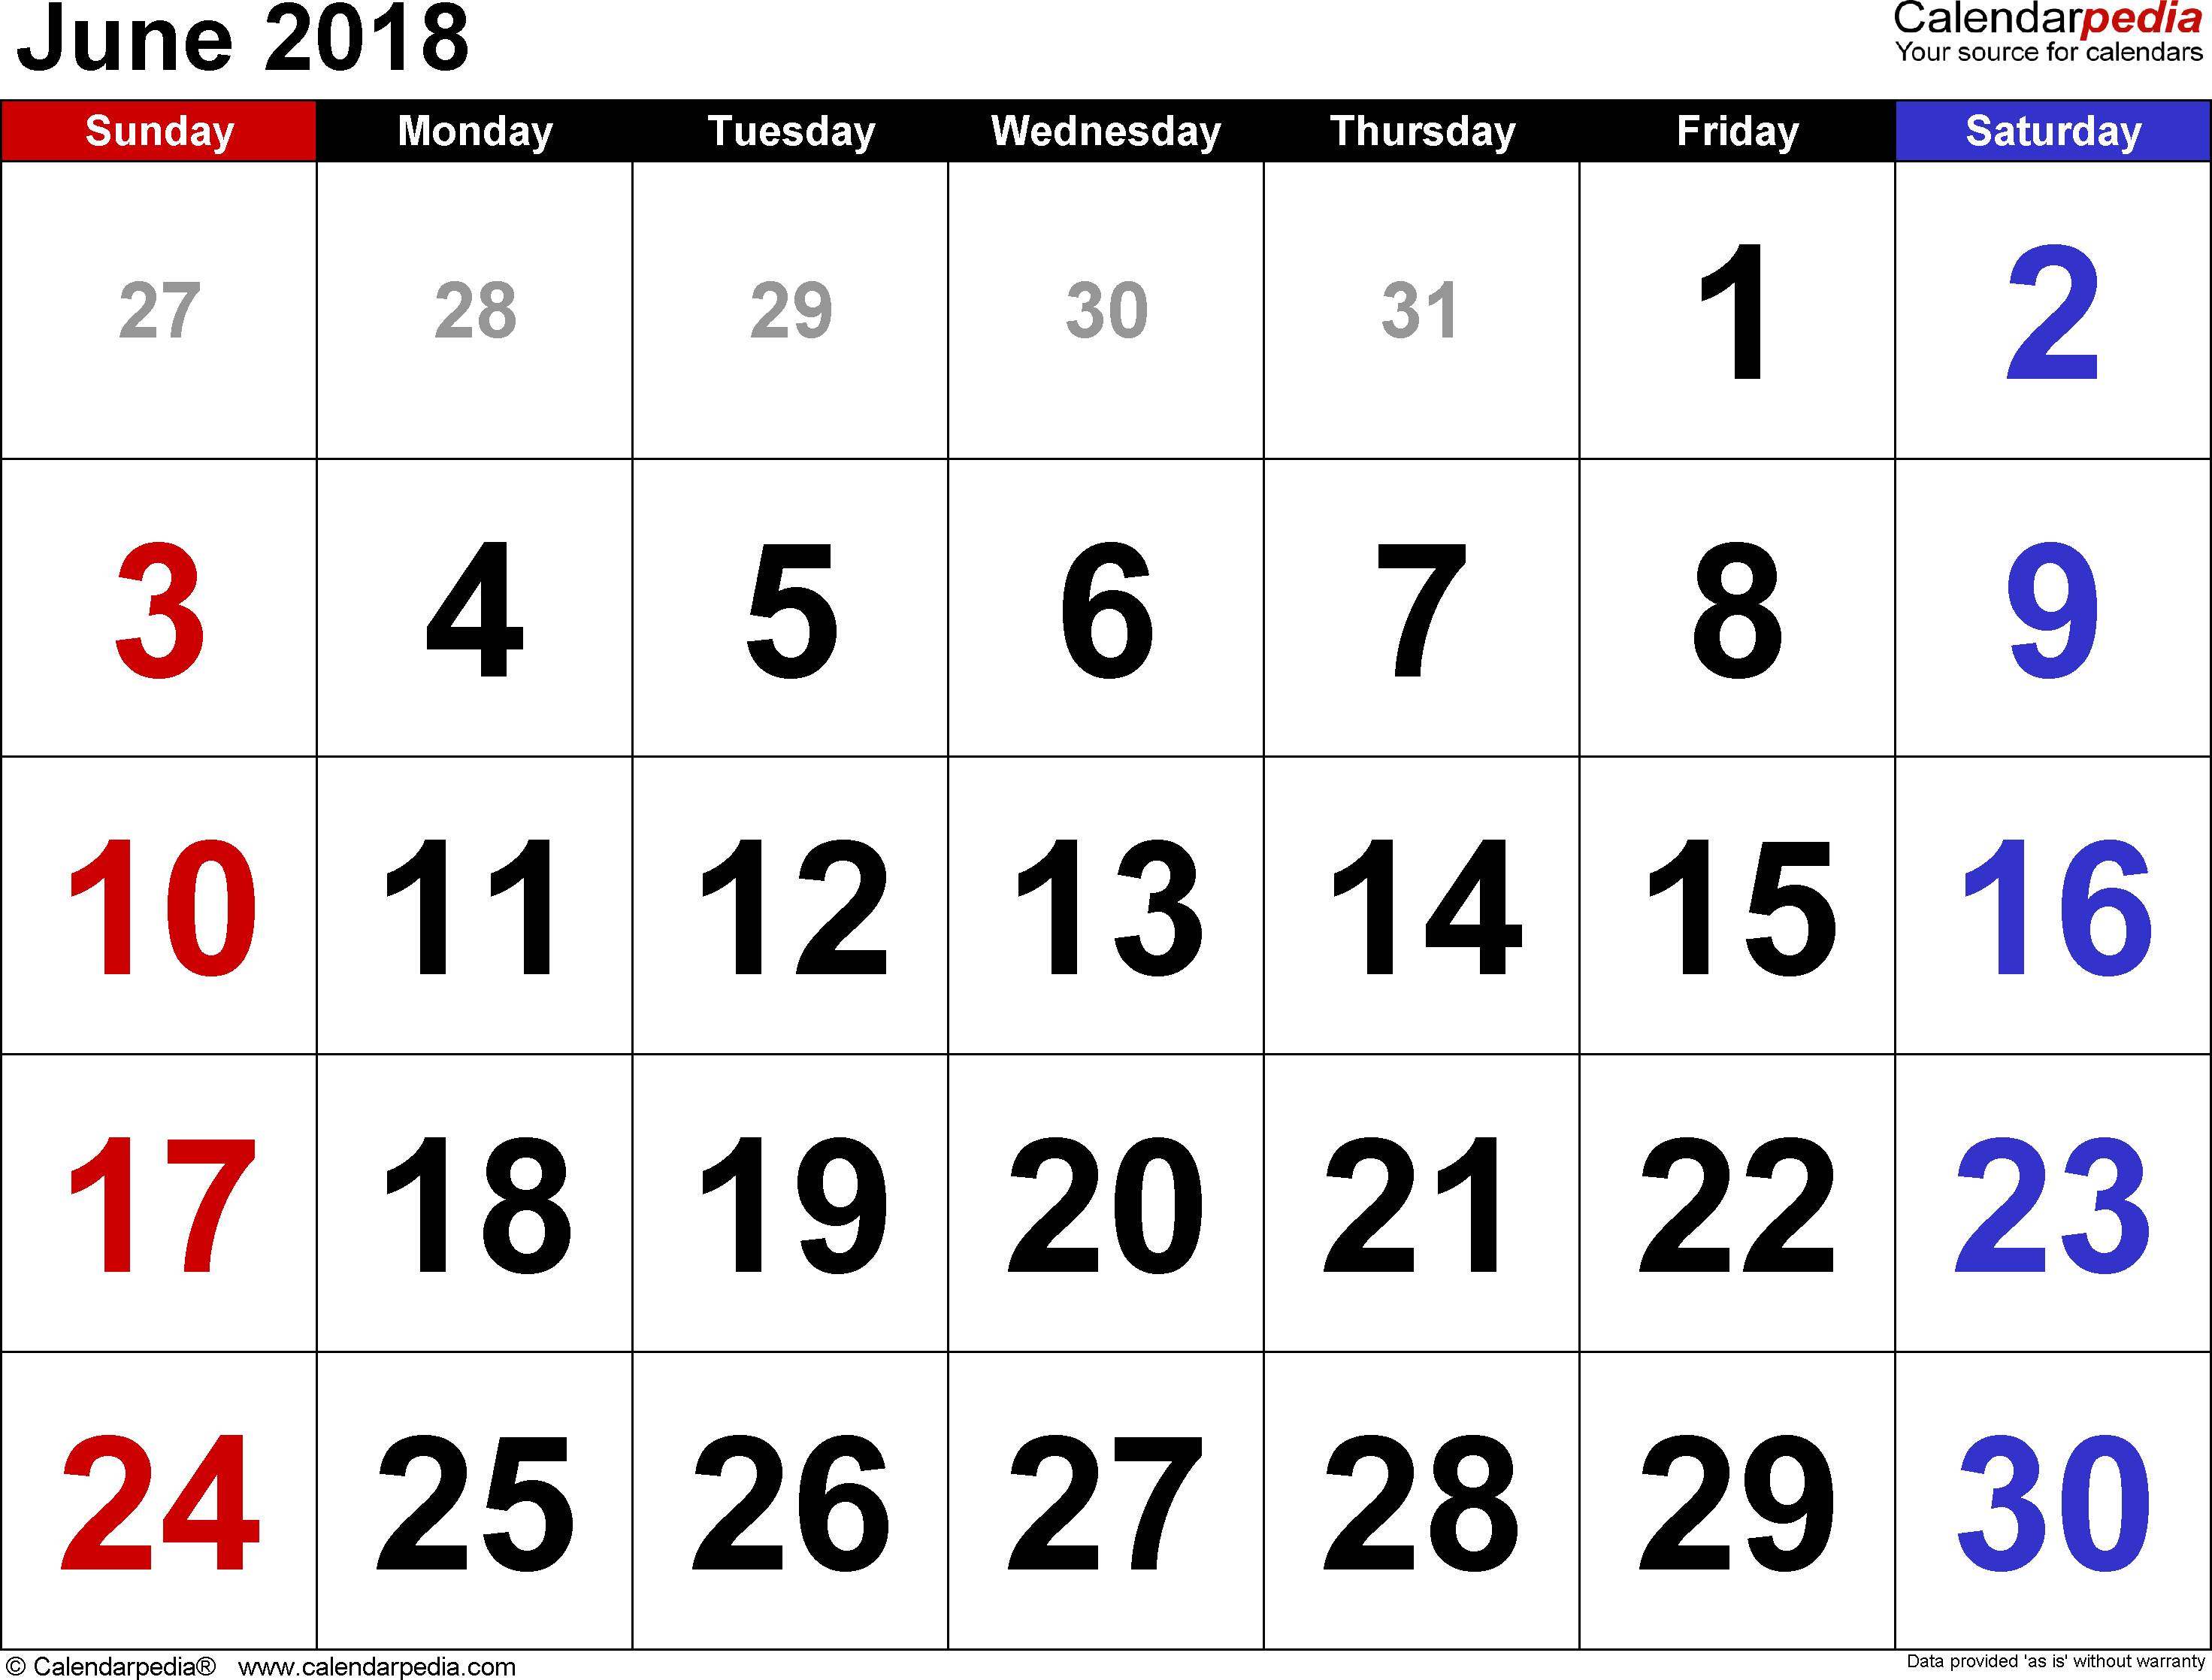 June 2018 USA Calendar with Holidays